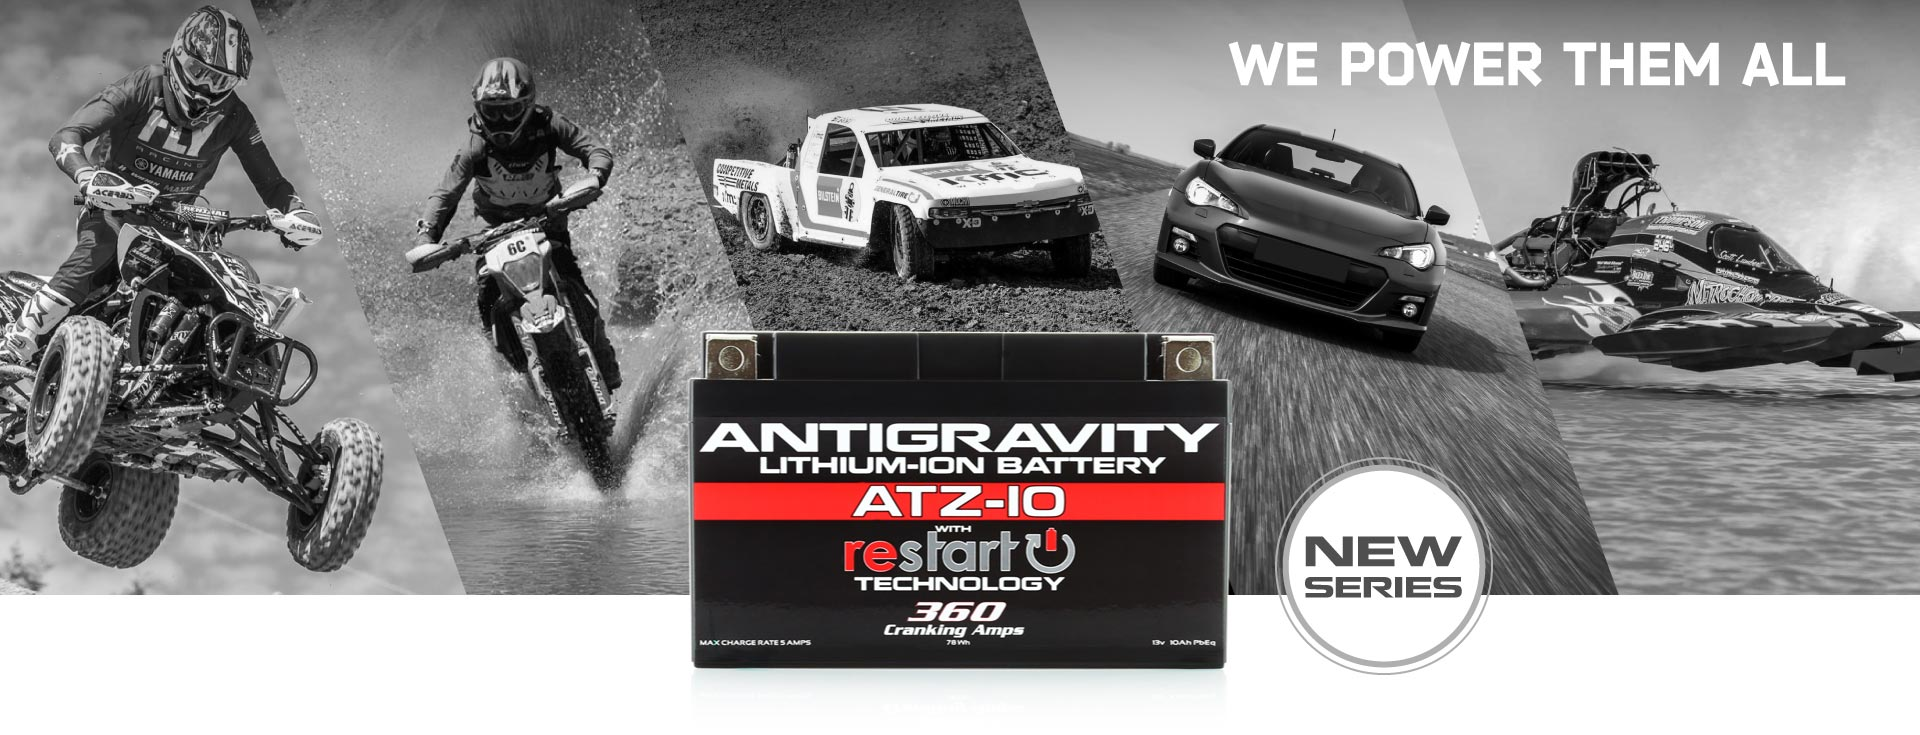 Antigravity Lightweight Lithium Powersports Batteries